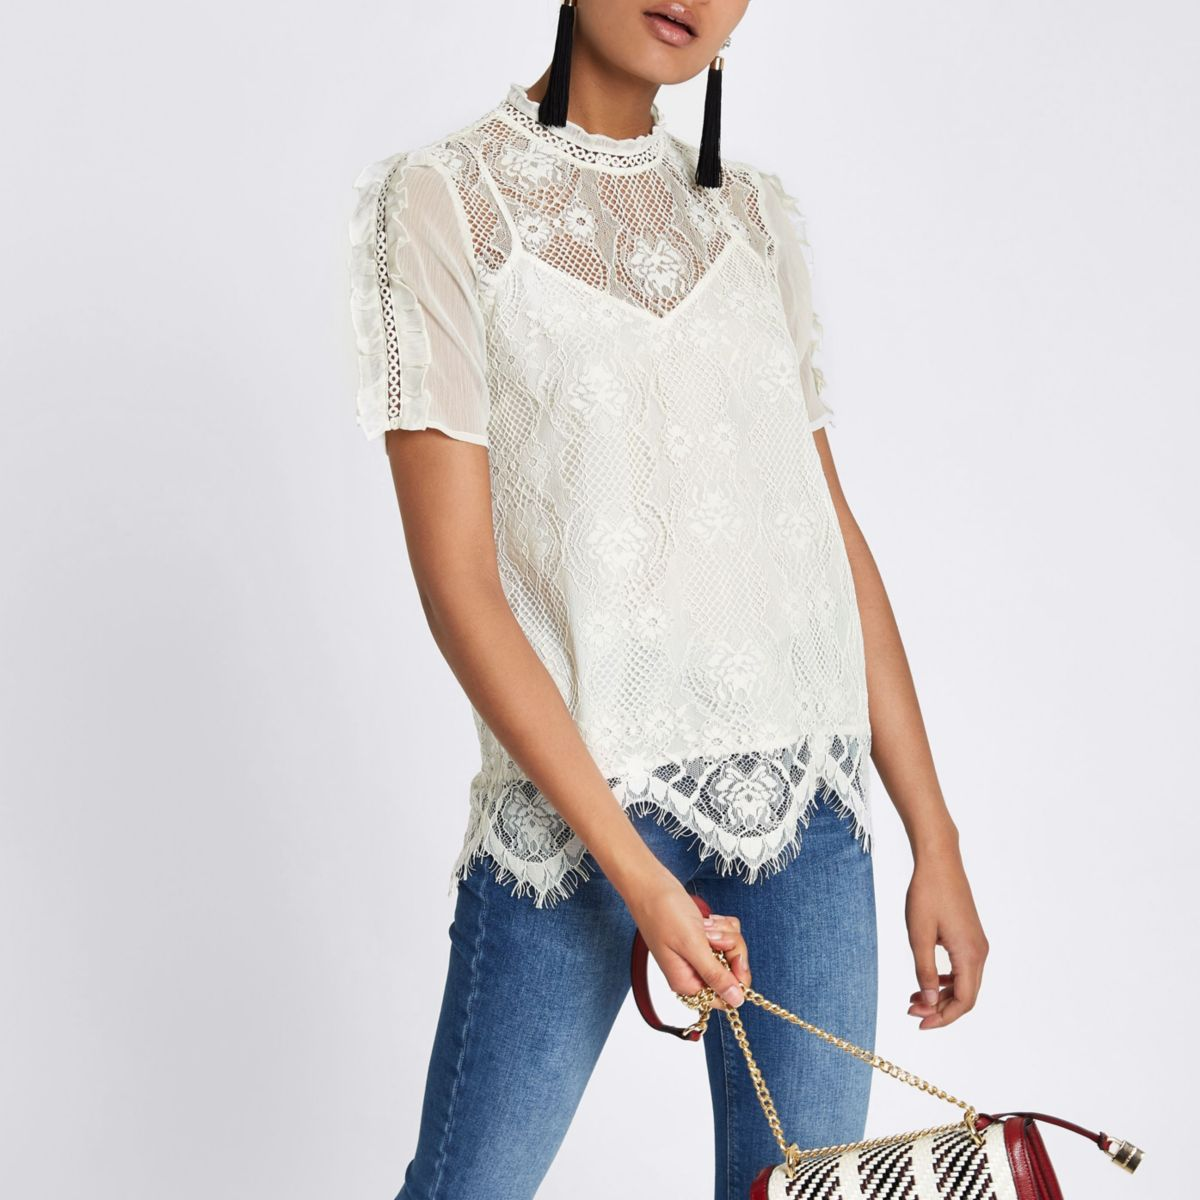 White lace beaded high neck top